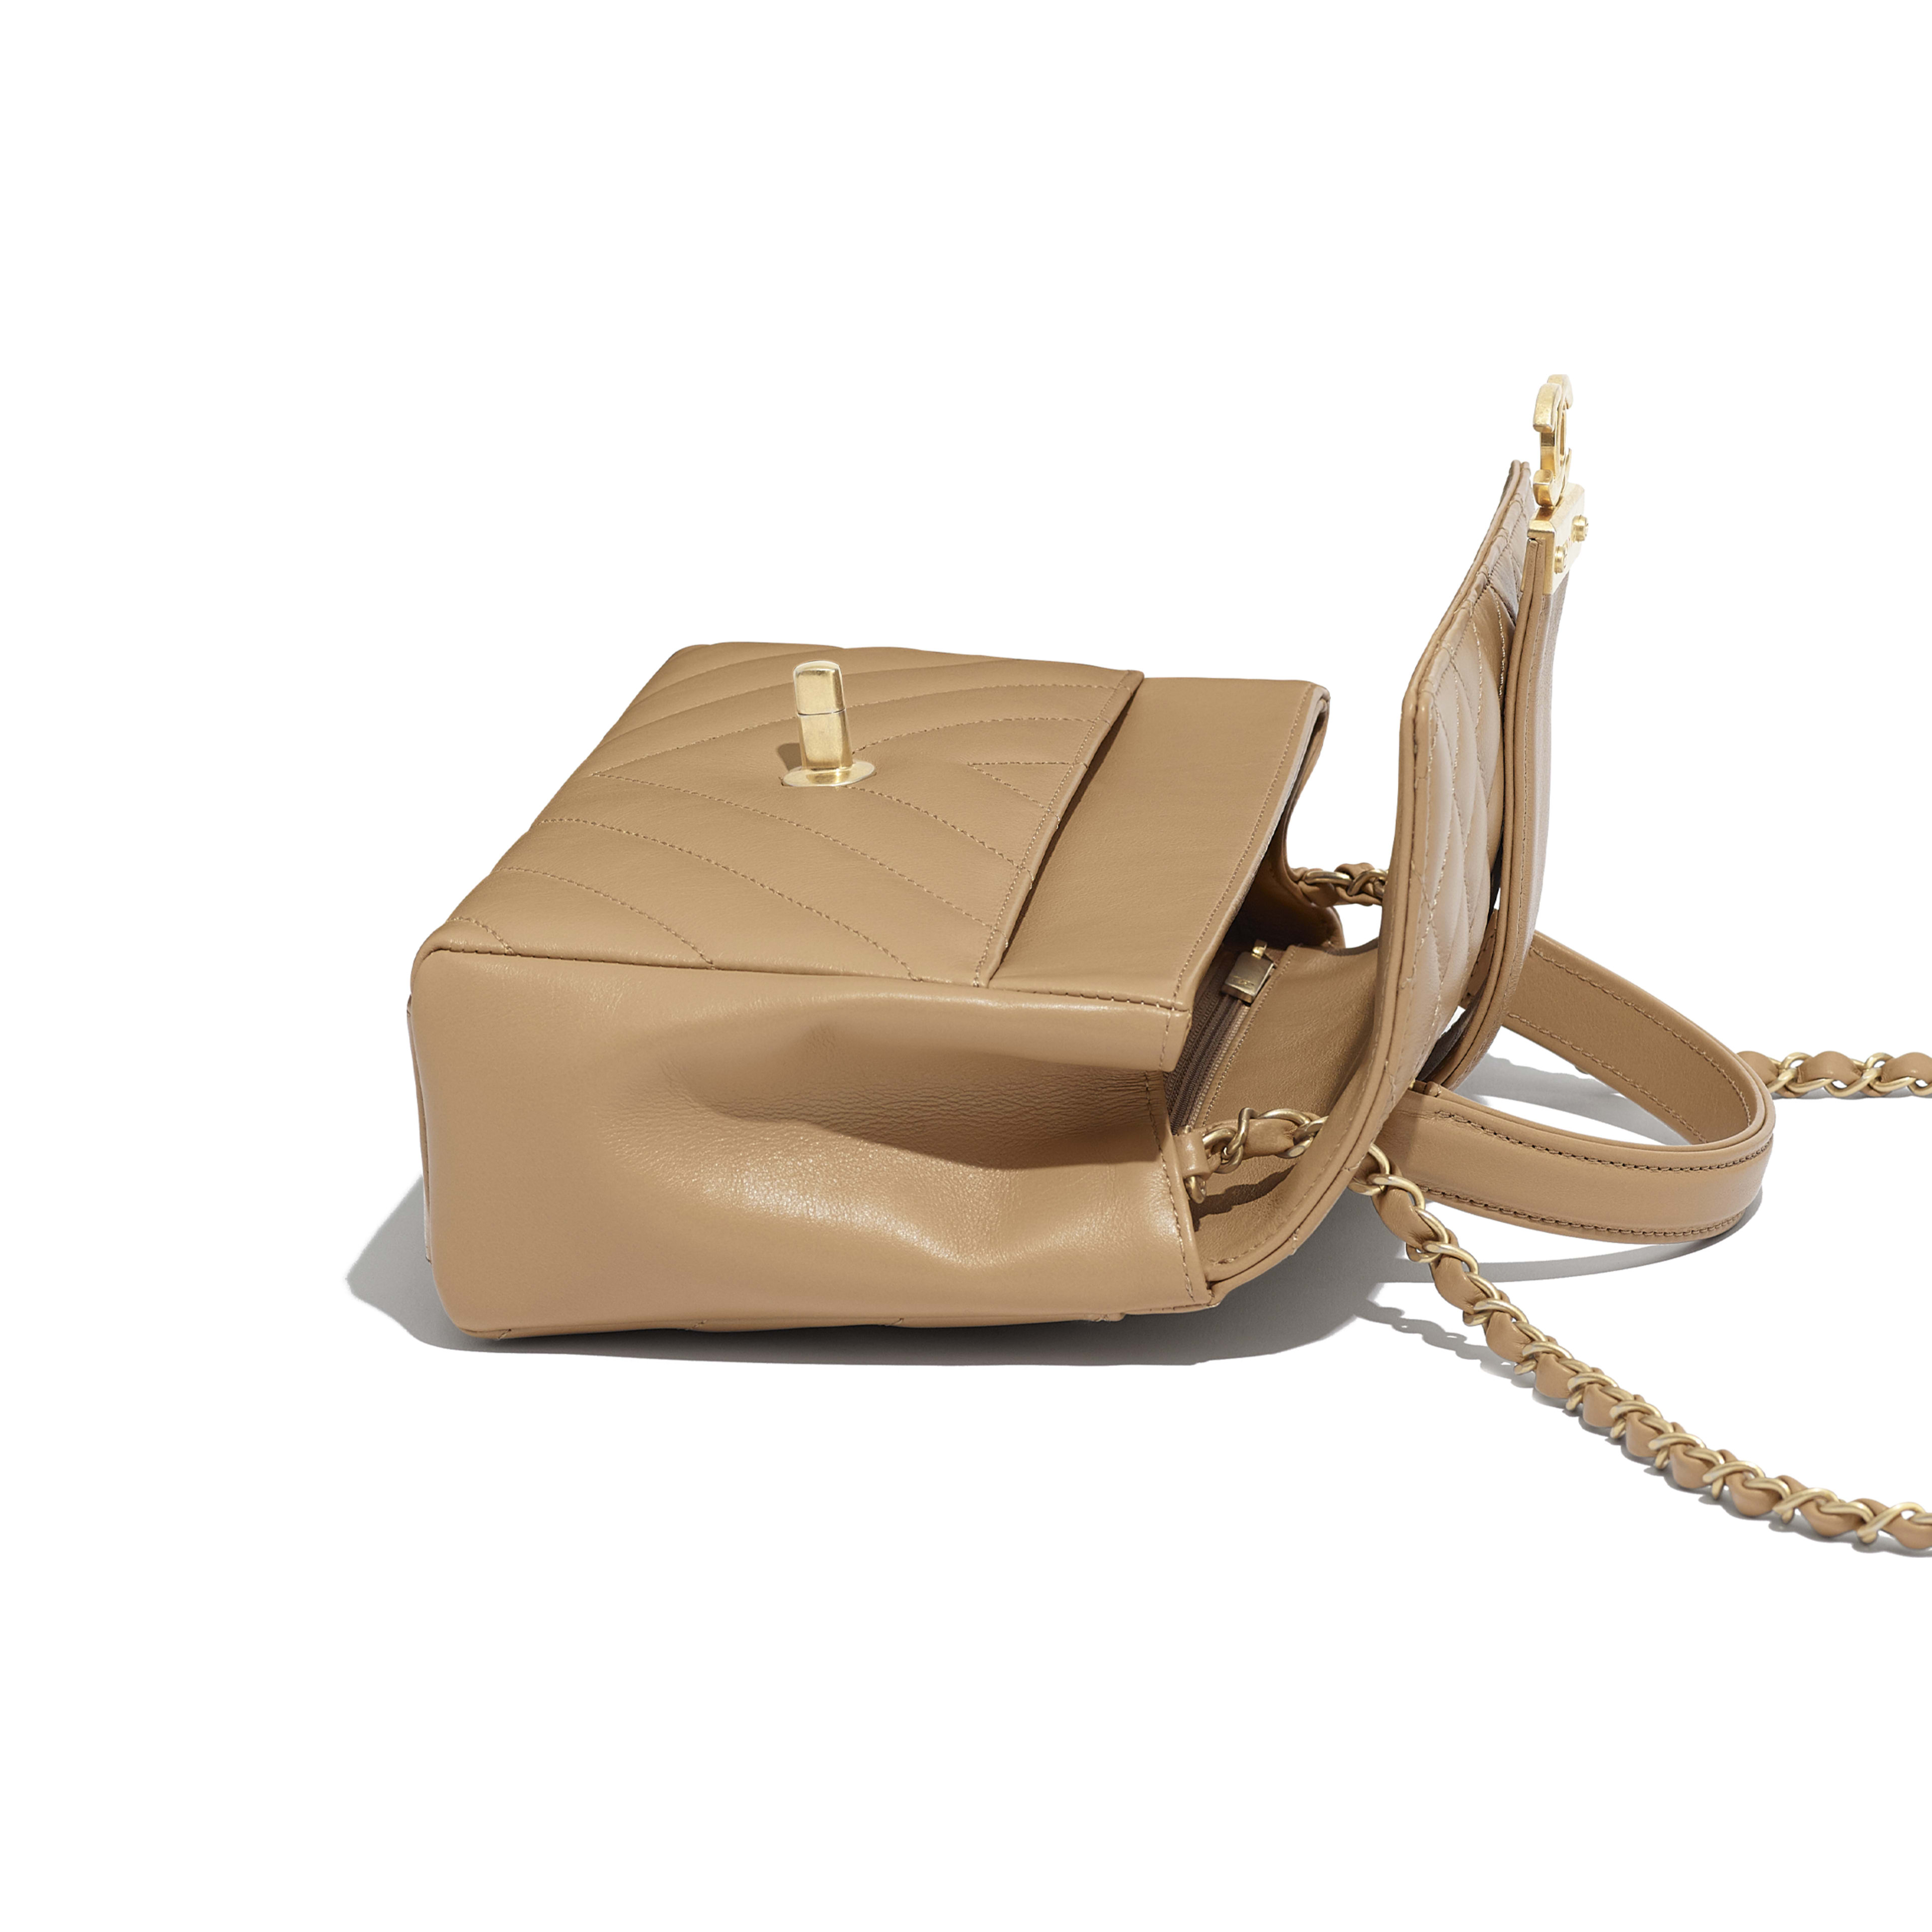 Flap Bag with Top Handle - Beige - Calfskin & Gold-Tone Metal - Other view - see full sized version